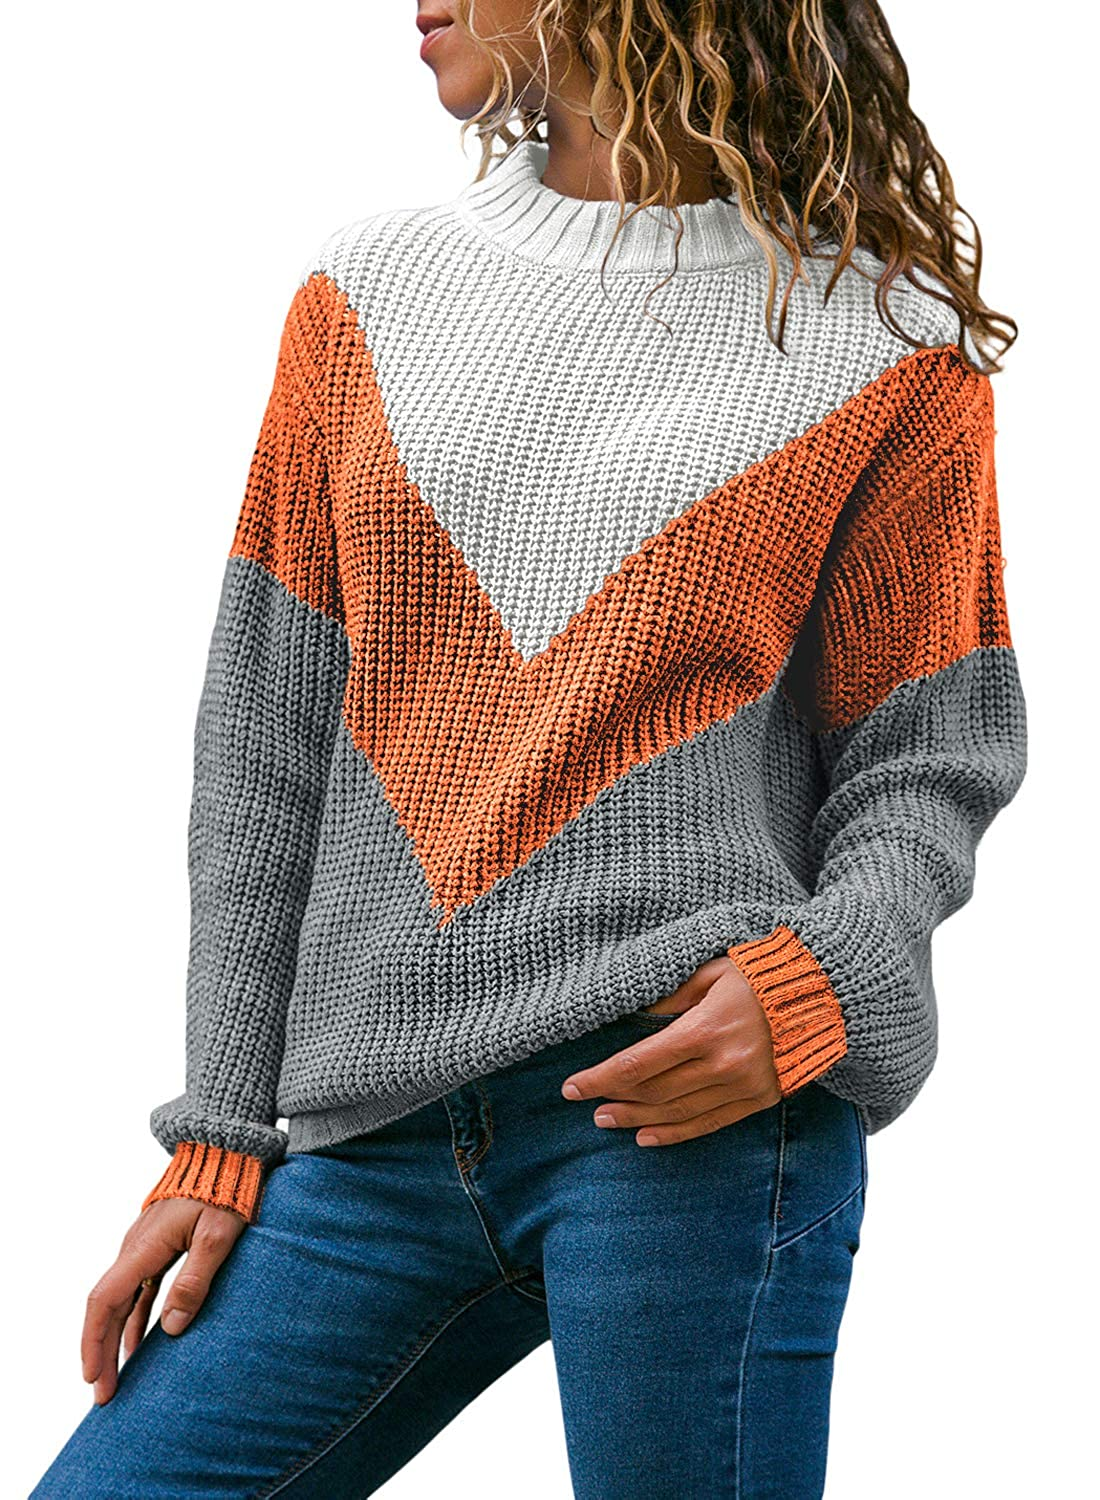 LOSRLY Women Round Neck Color Block Long Sleeve Knitted Sweater Tops Pullover Jumper YL27913